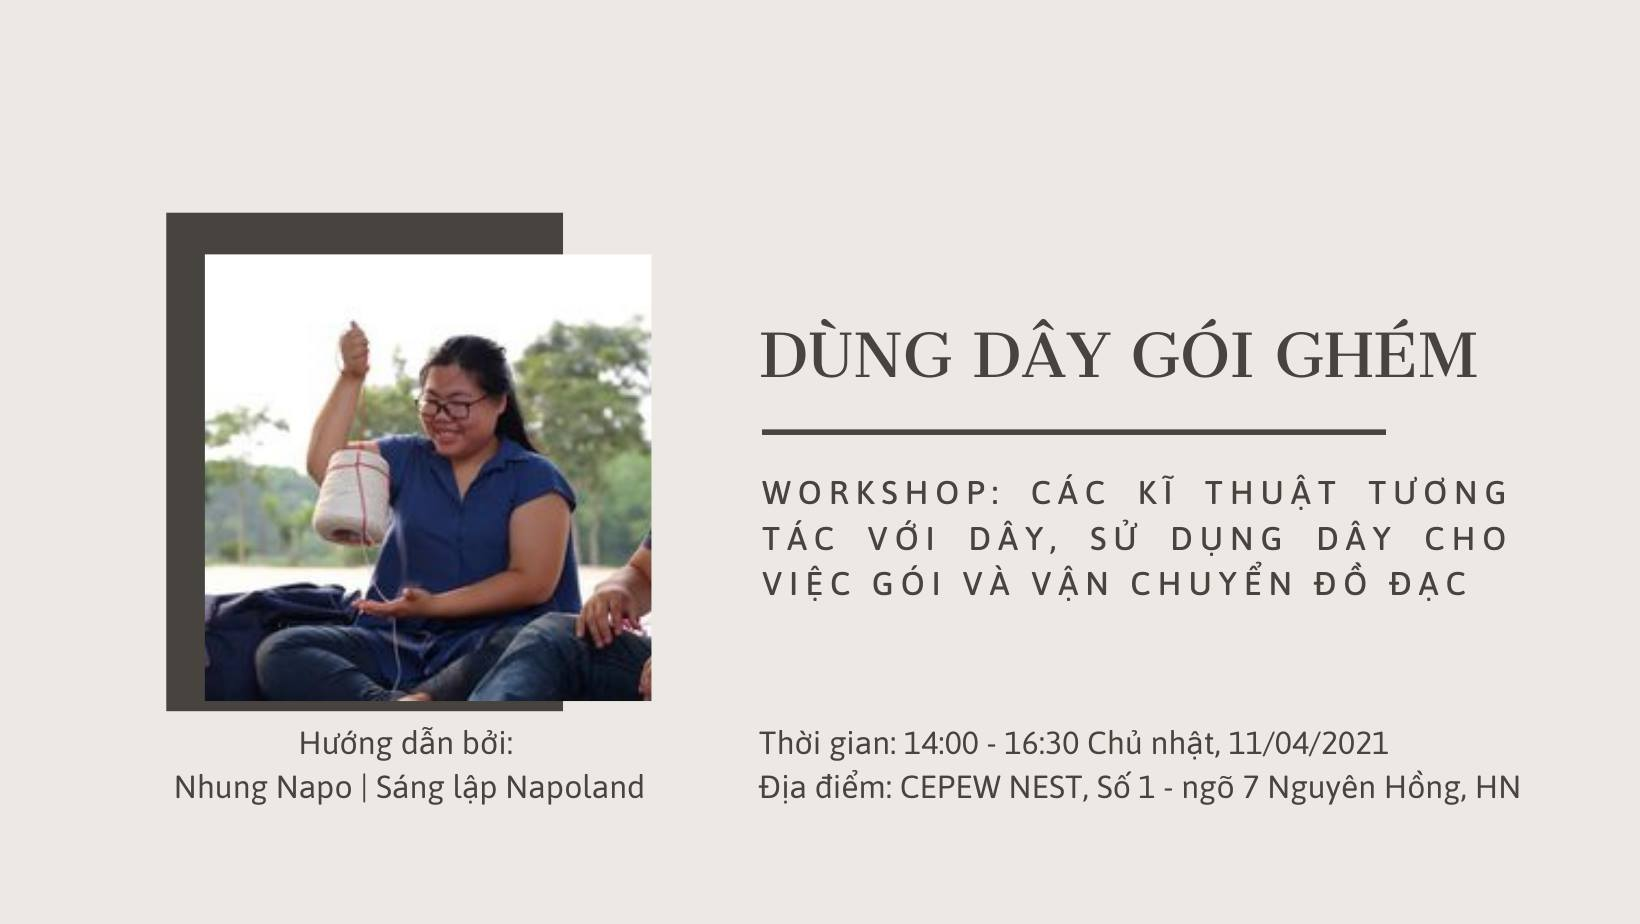 workshop - Ảnh 1.